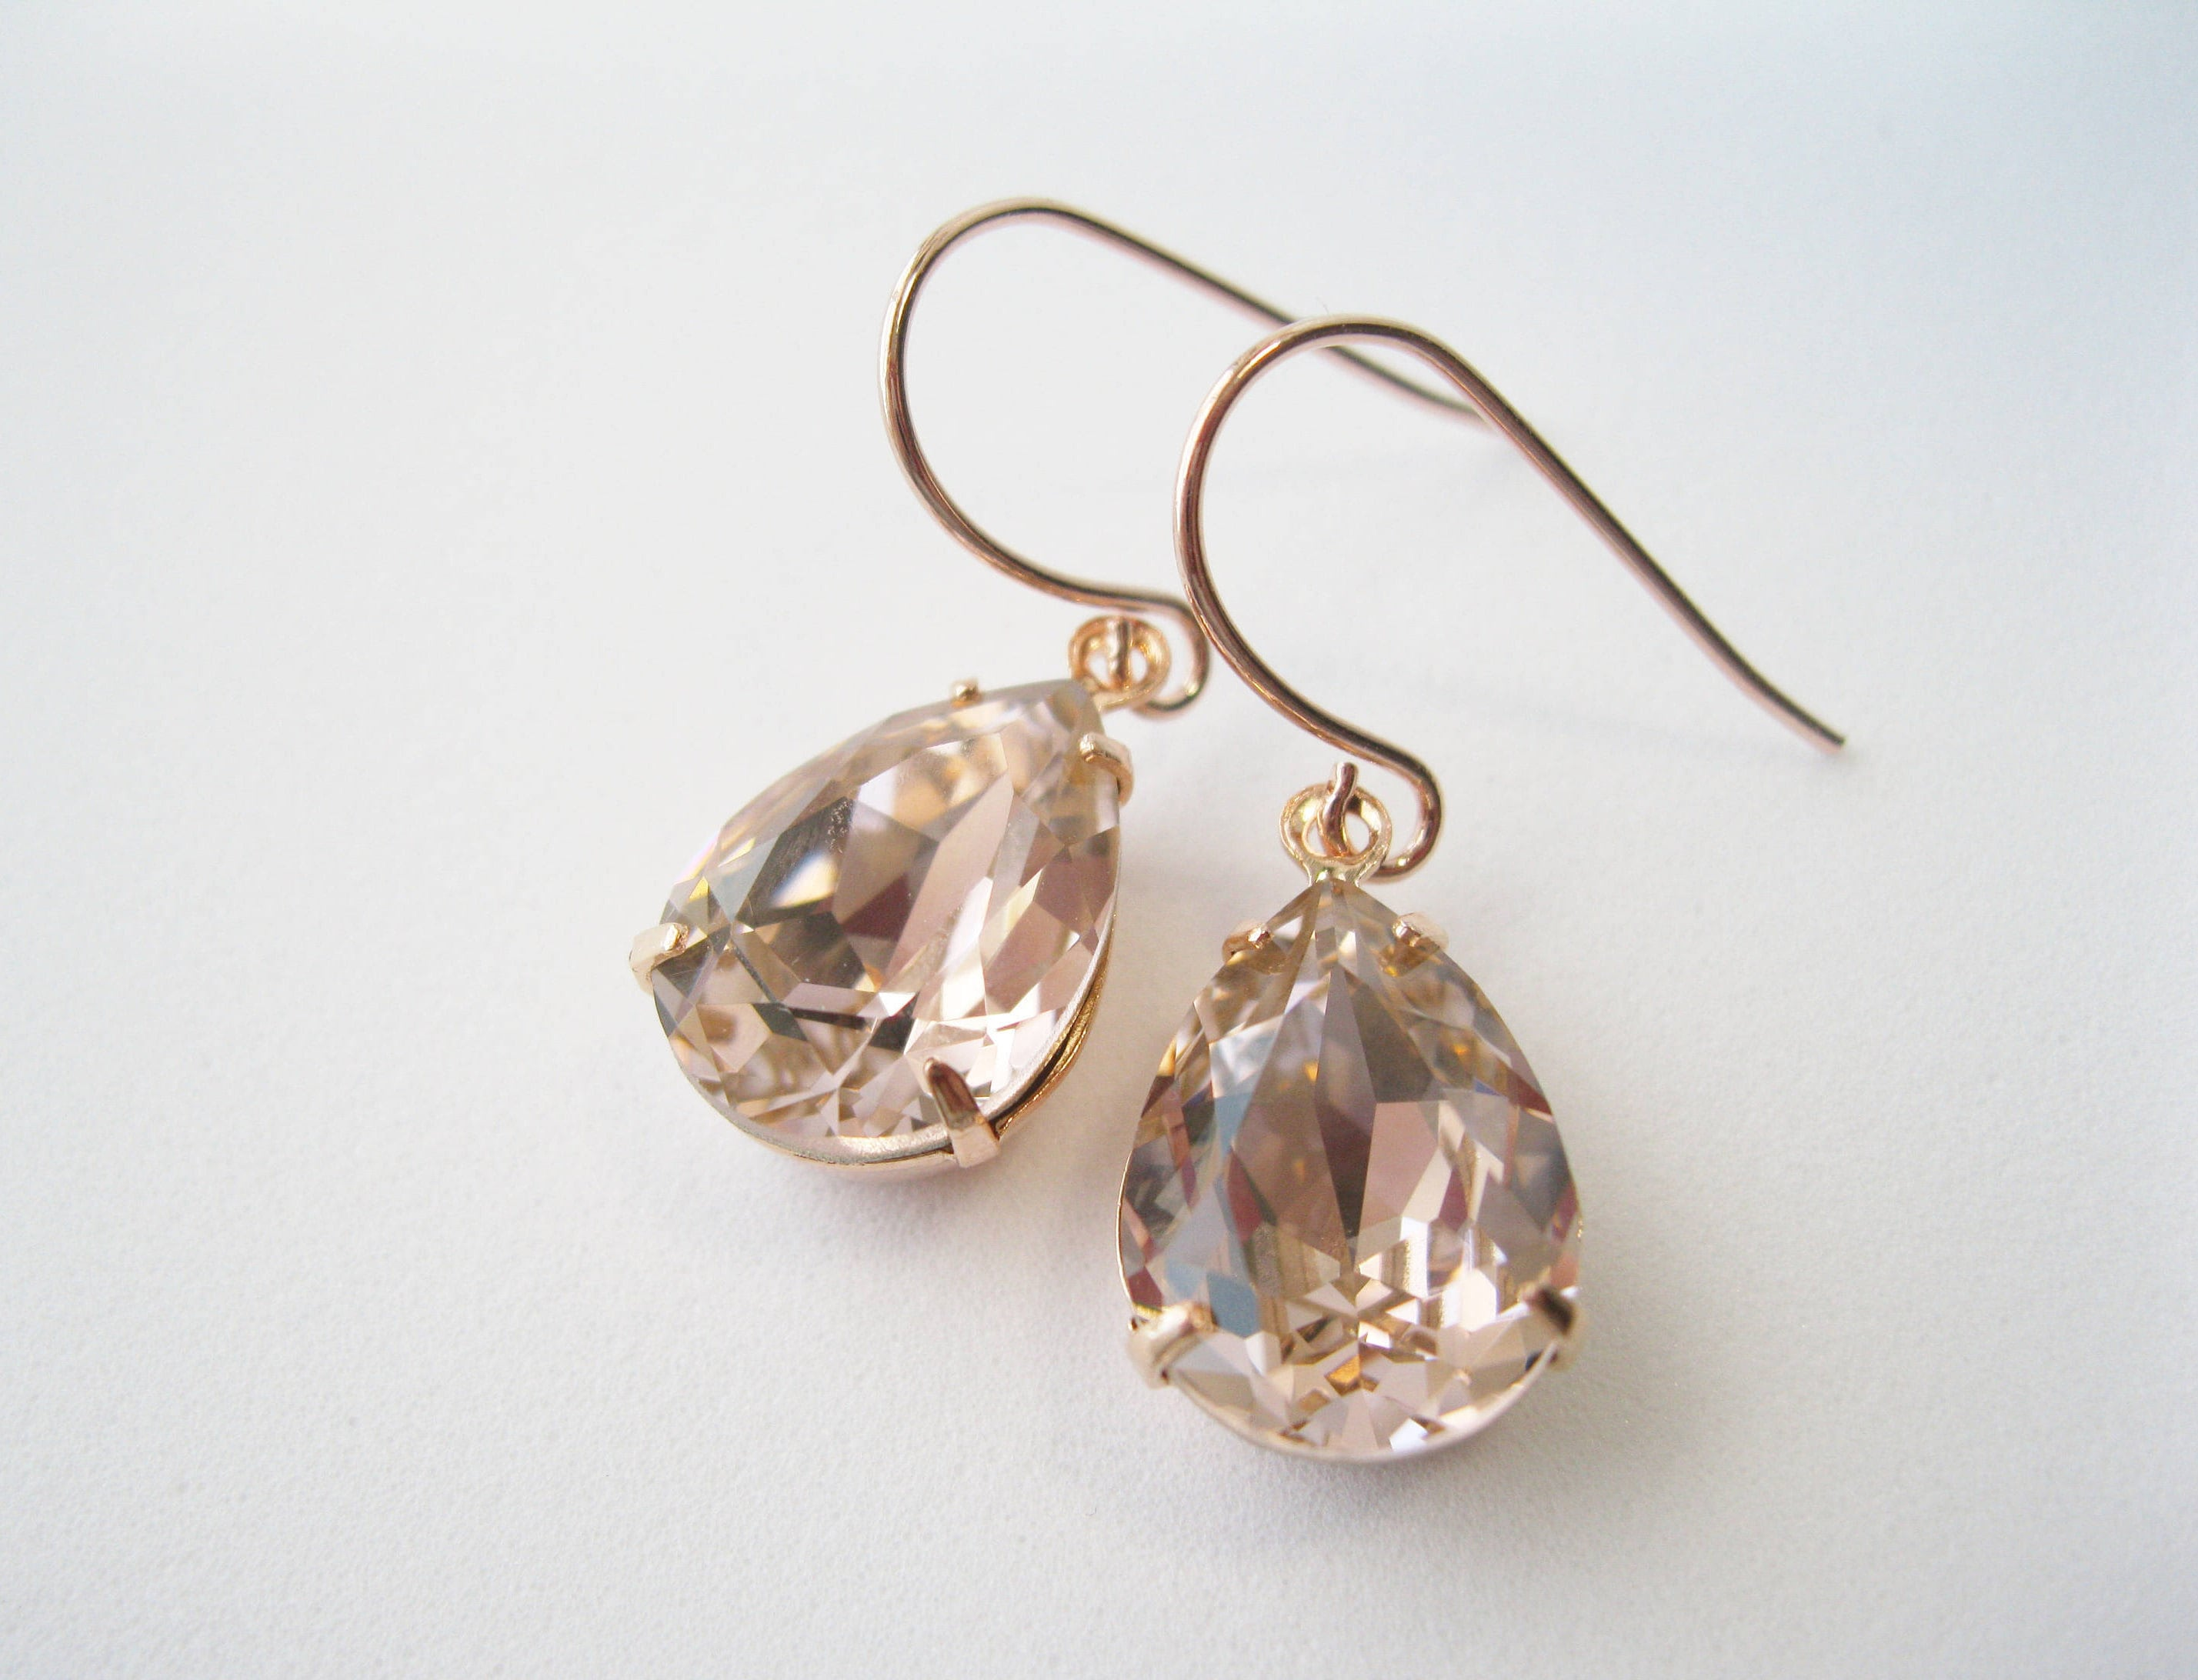 9d07a4a42 Blush and Rose Gold Crystal Bridesmaid Earrings Teardrop Dangles Art Deco  Vintage Style Blush Wedding Jewelry Choice of Metal